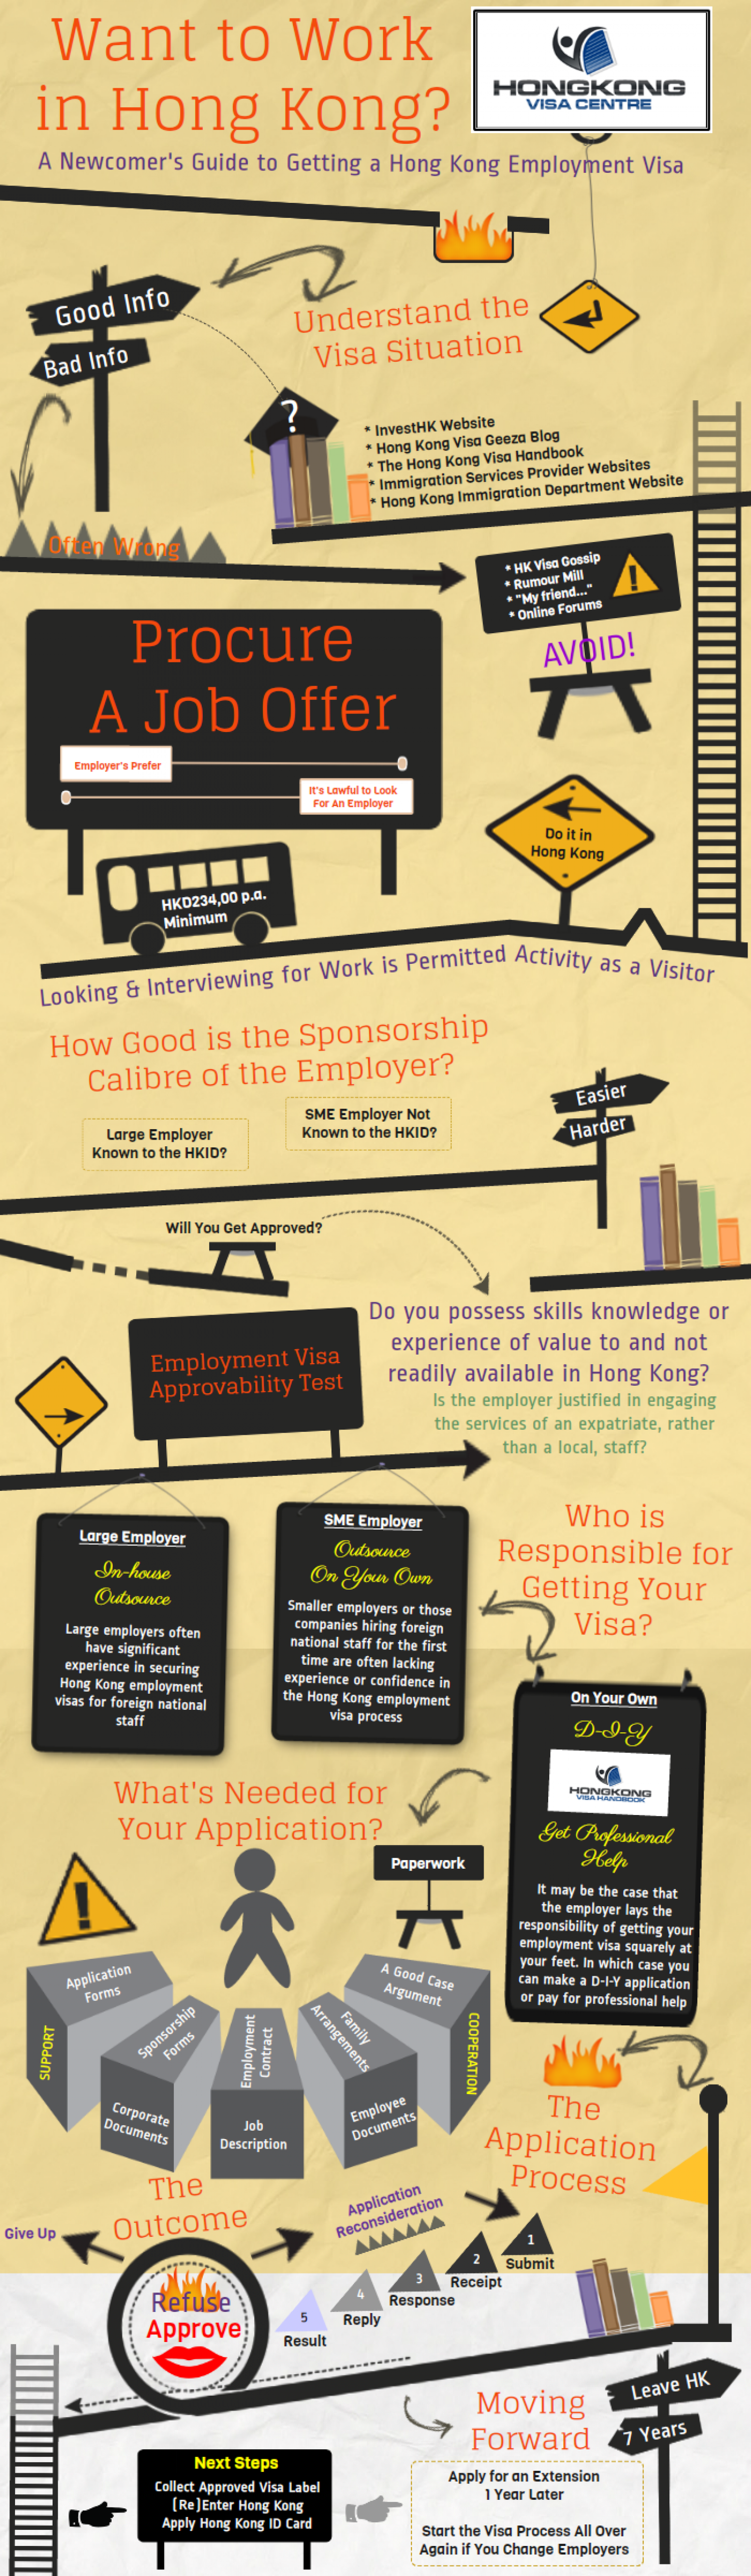 Newcomer's Guide to Getting a Hong Kong Employment Visa Infographic